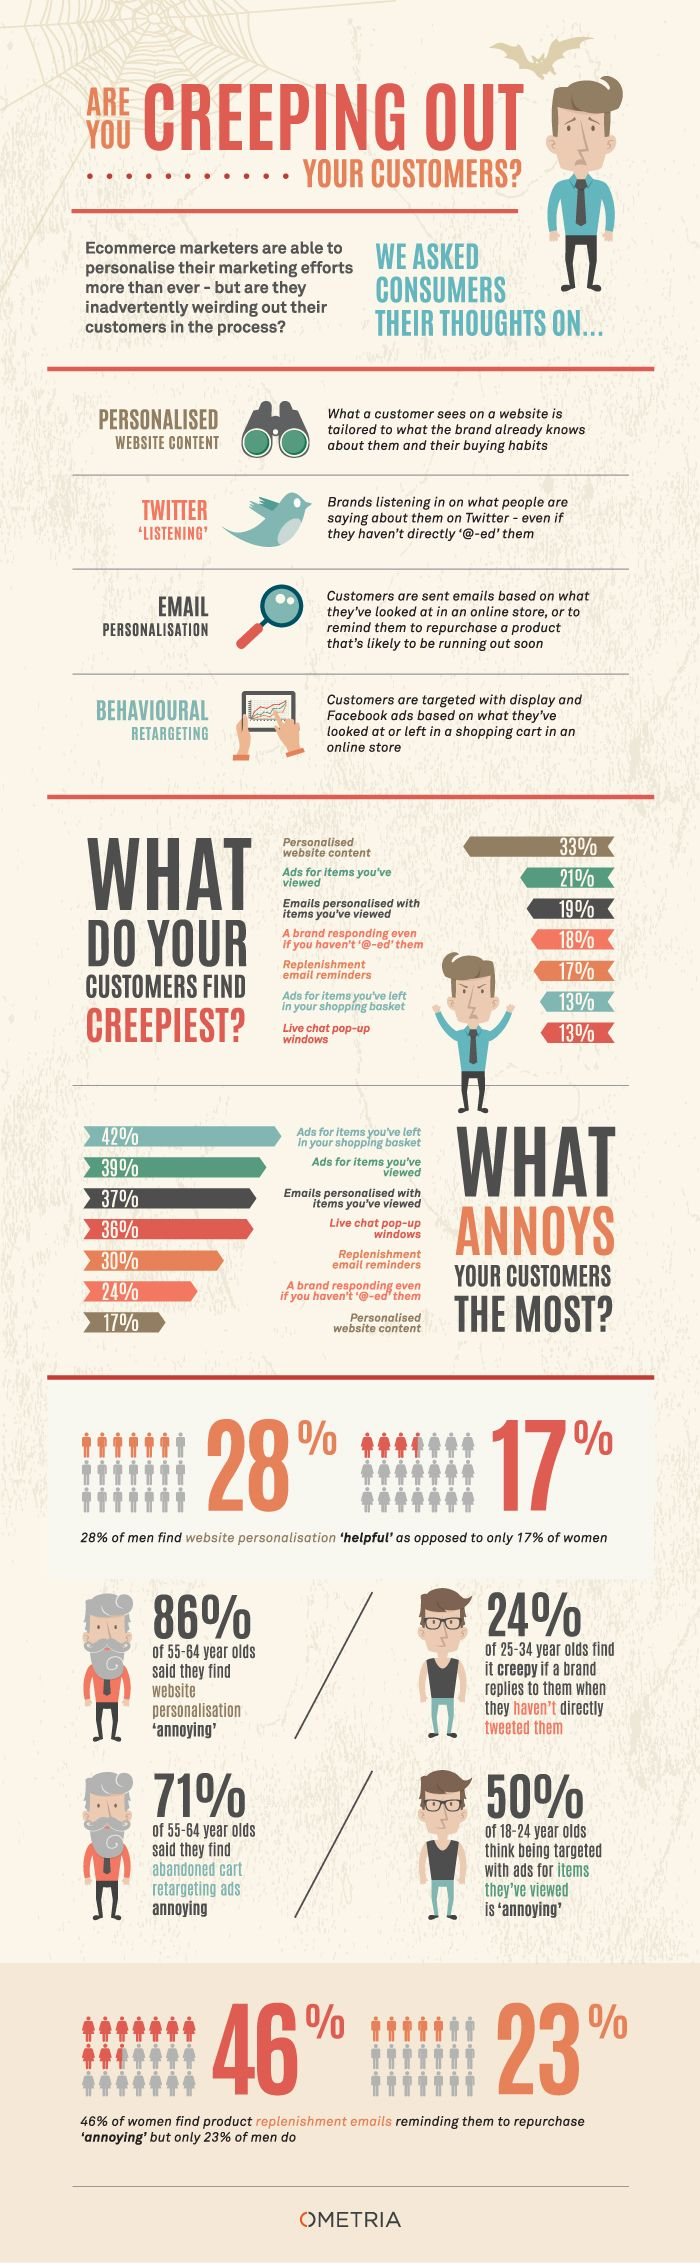 Are You Creeping Out Your Customers? | Ometria [Infographic]